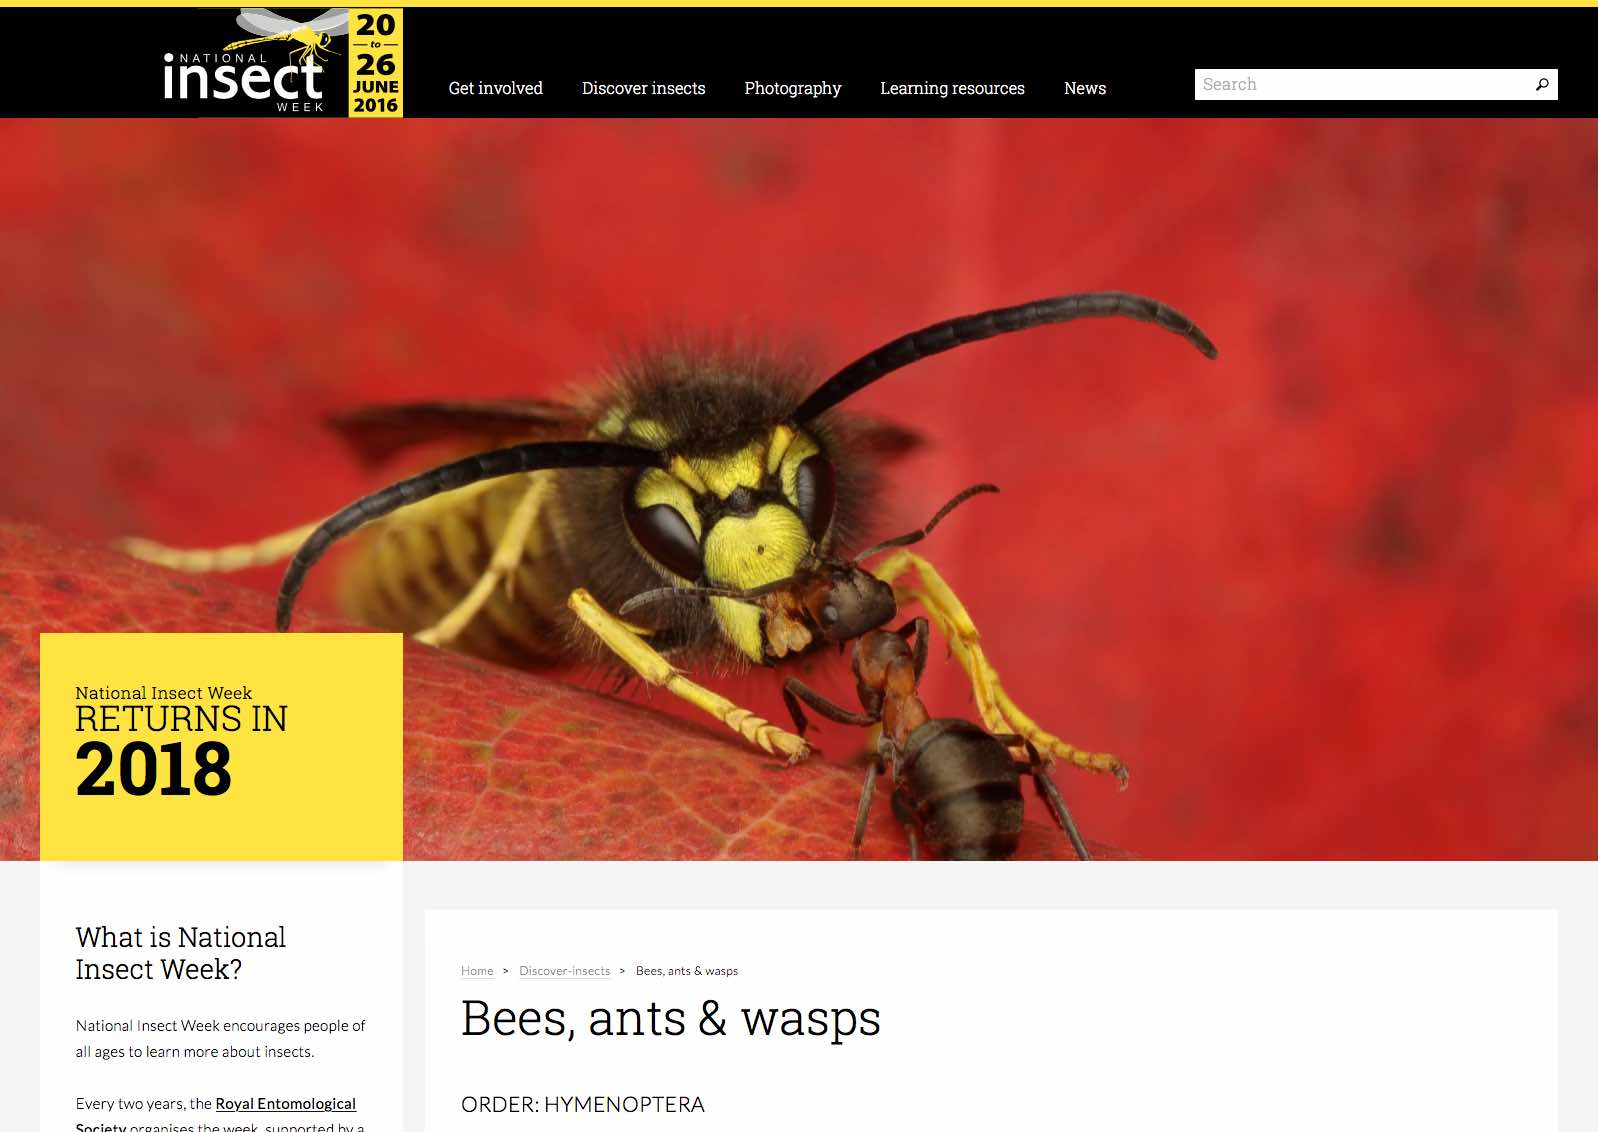 National Insect Week insect details page